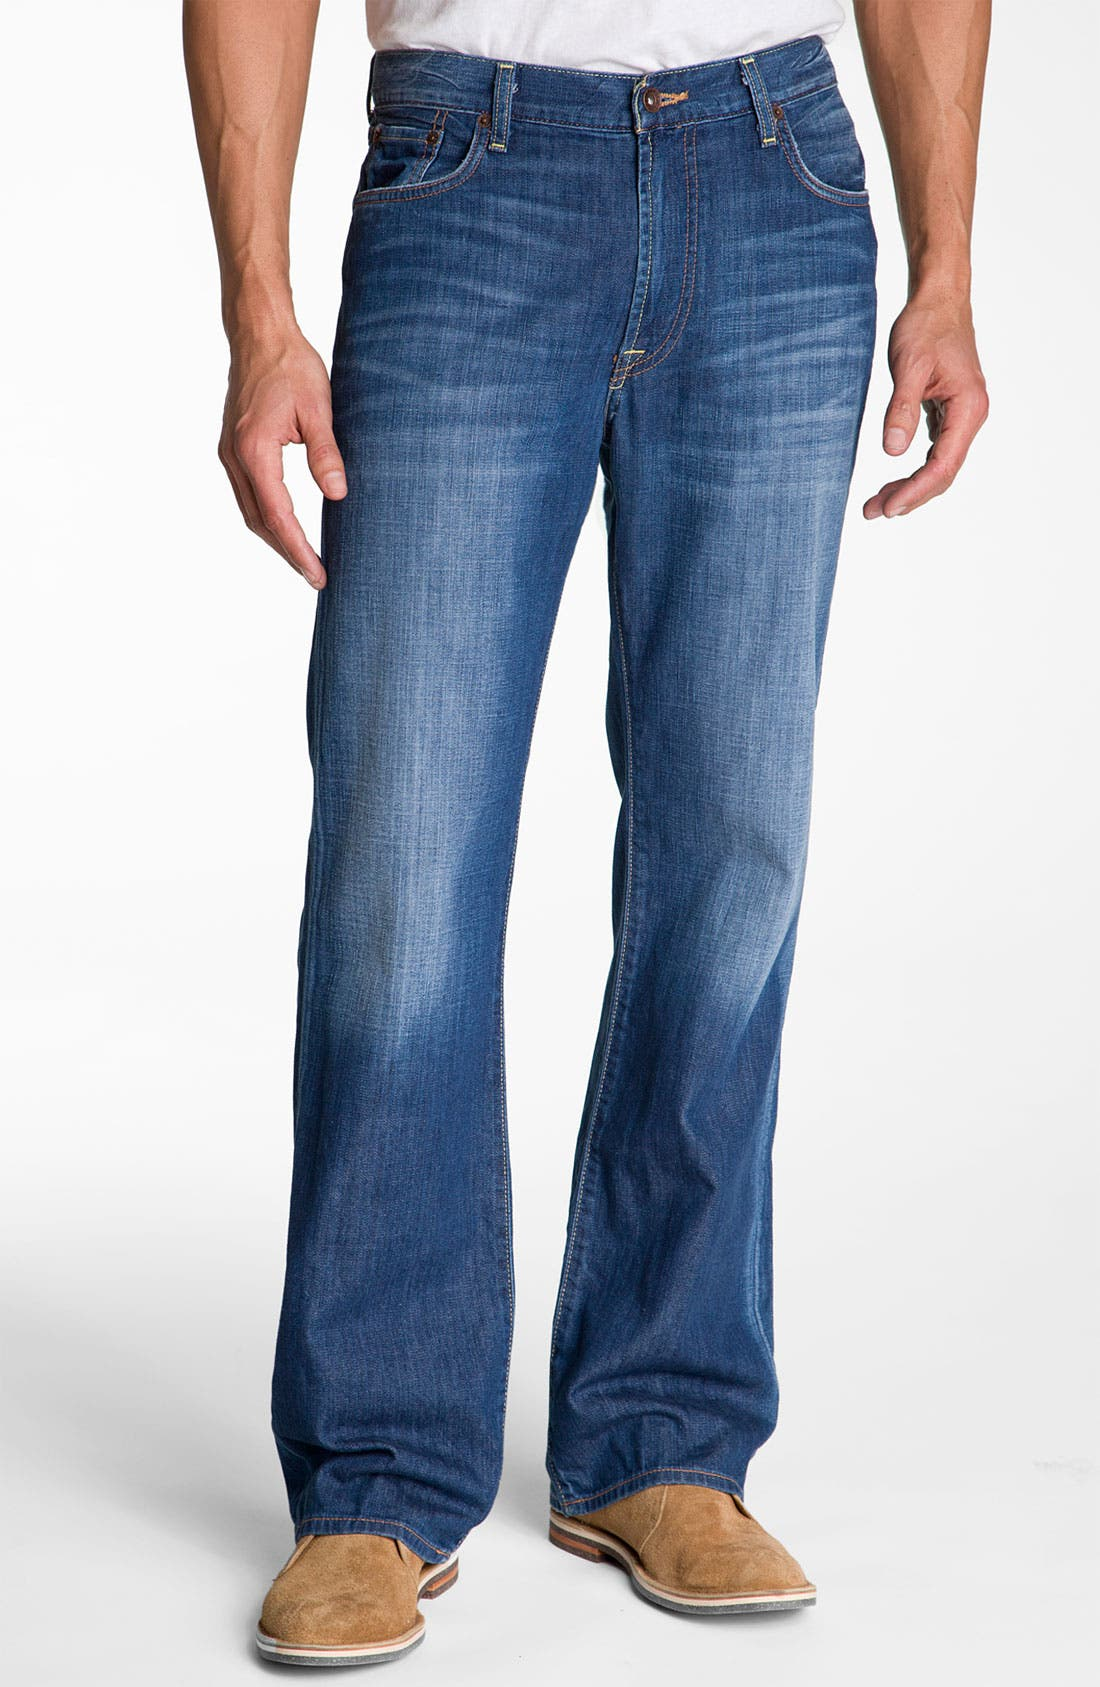 Alternate Image 1 Selected - Lucky Brand Relaxed Straight Leg Jeans (Ol' Neptune)